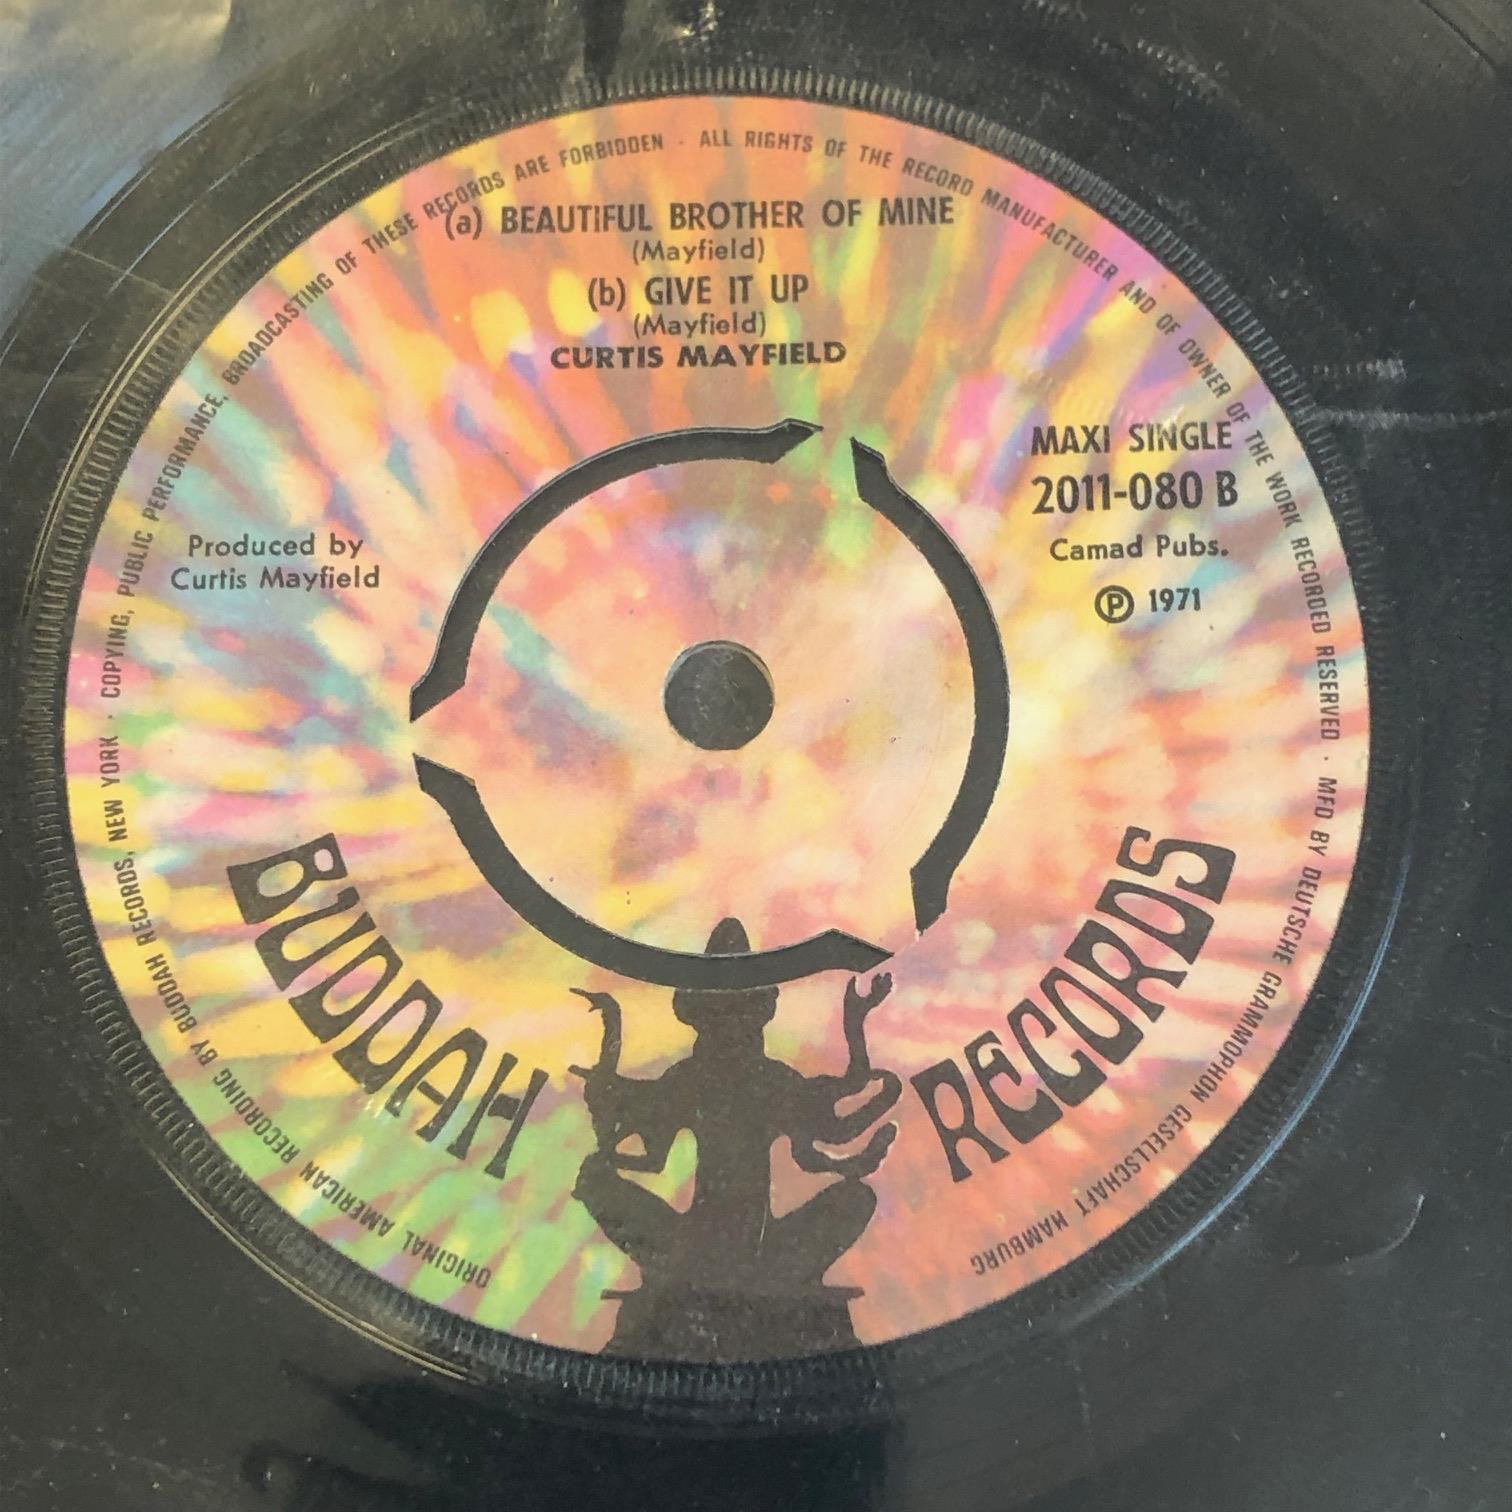 Vinyl - Collection of over 70 45's spanning genres and decades including Fleetwood Mac, Chicken - Image 7 of 15